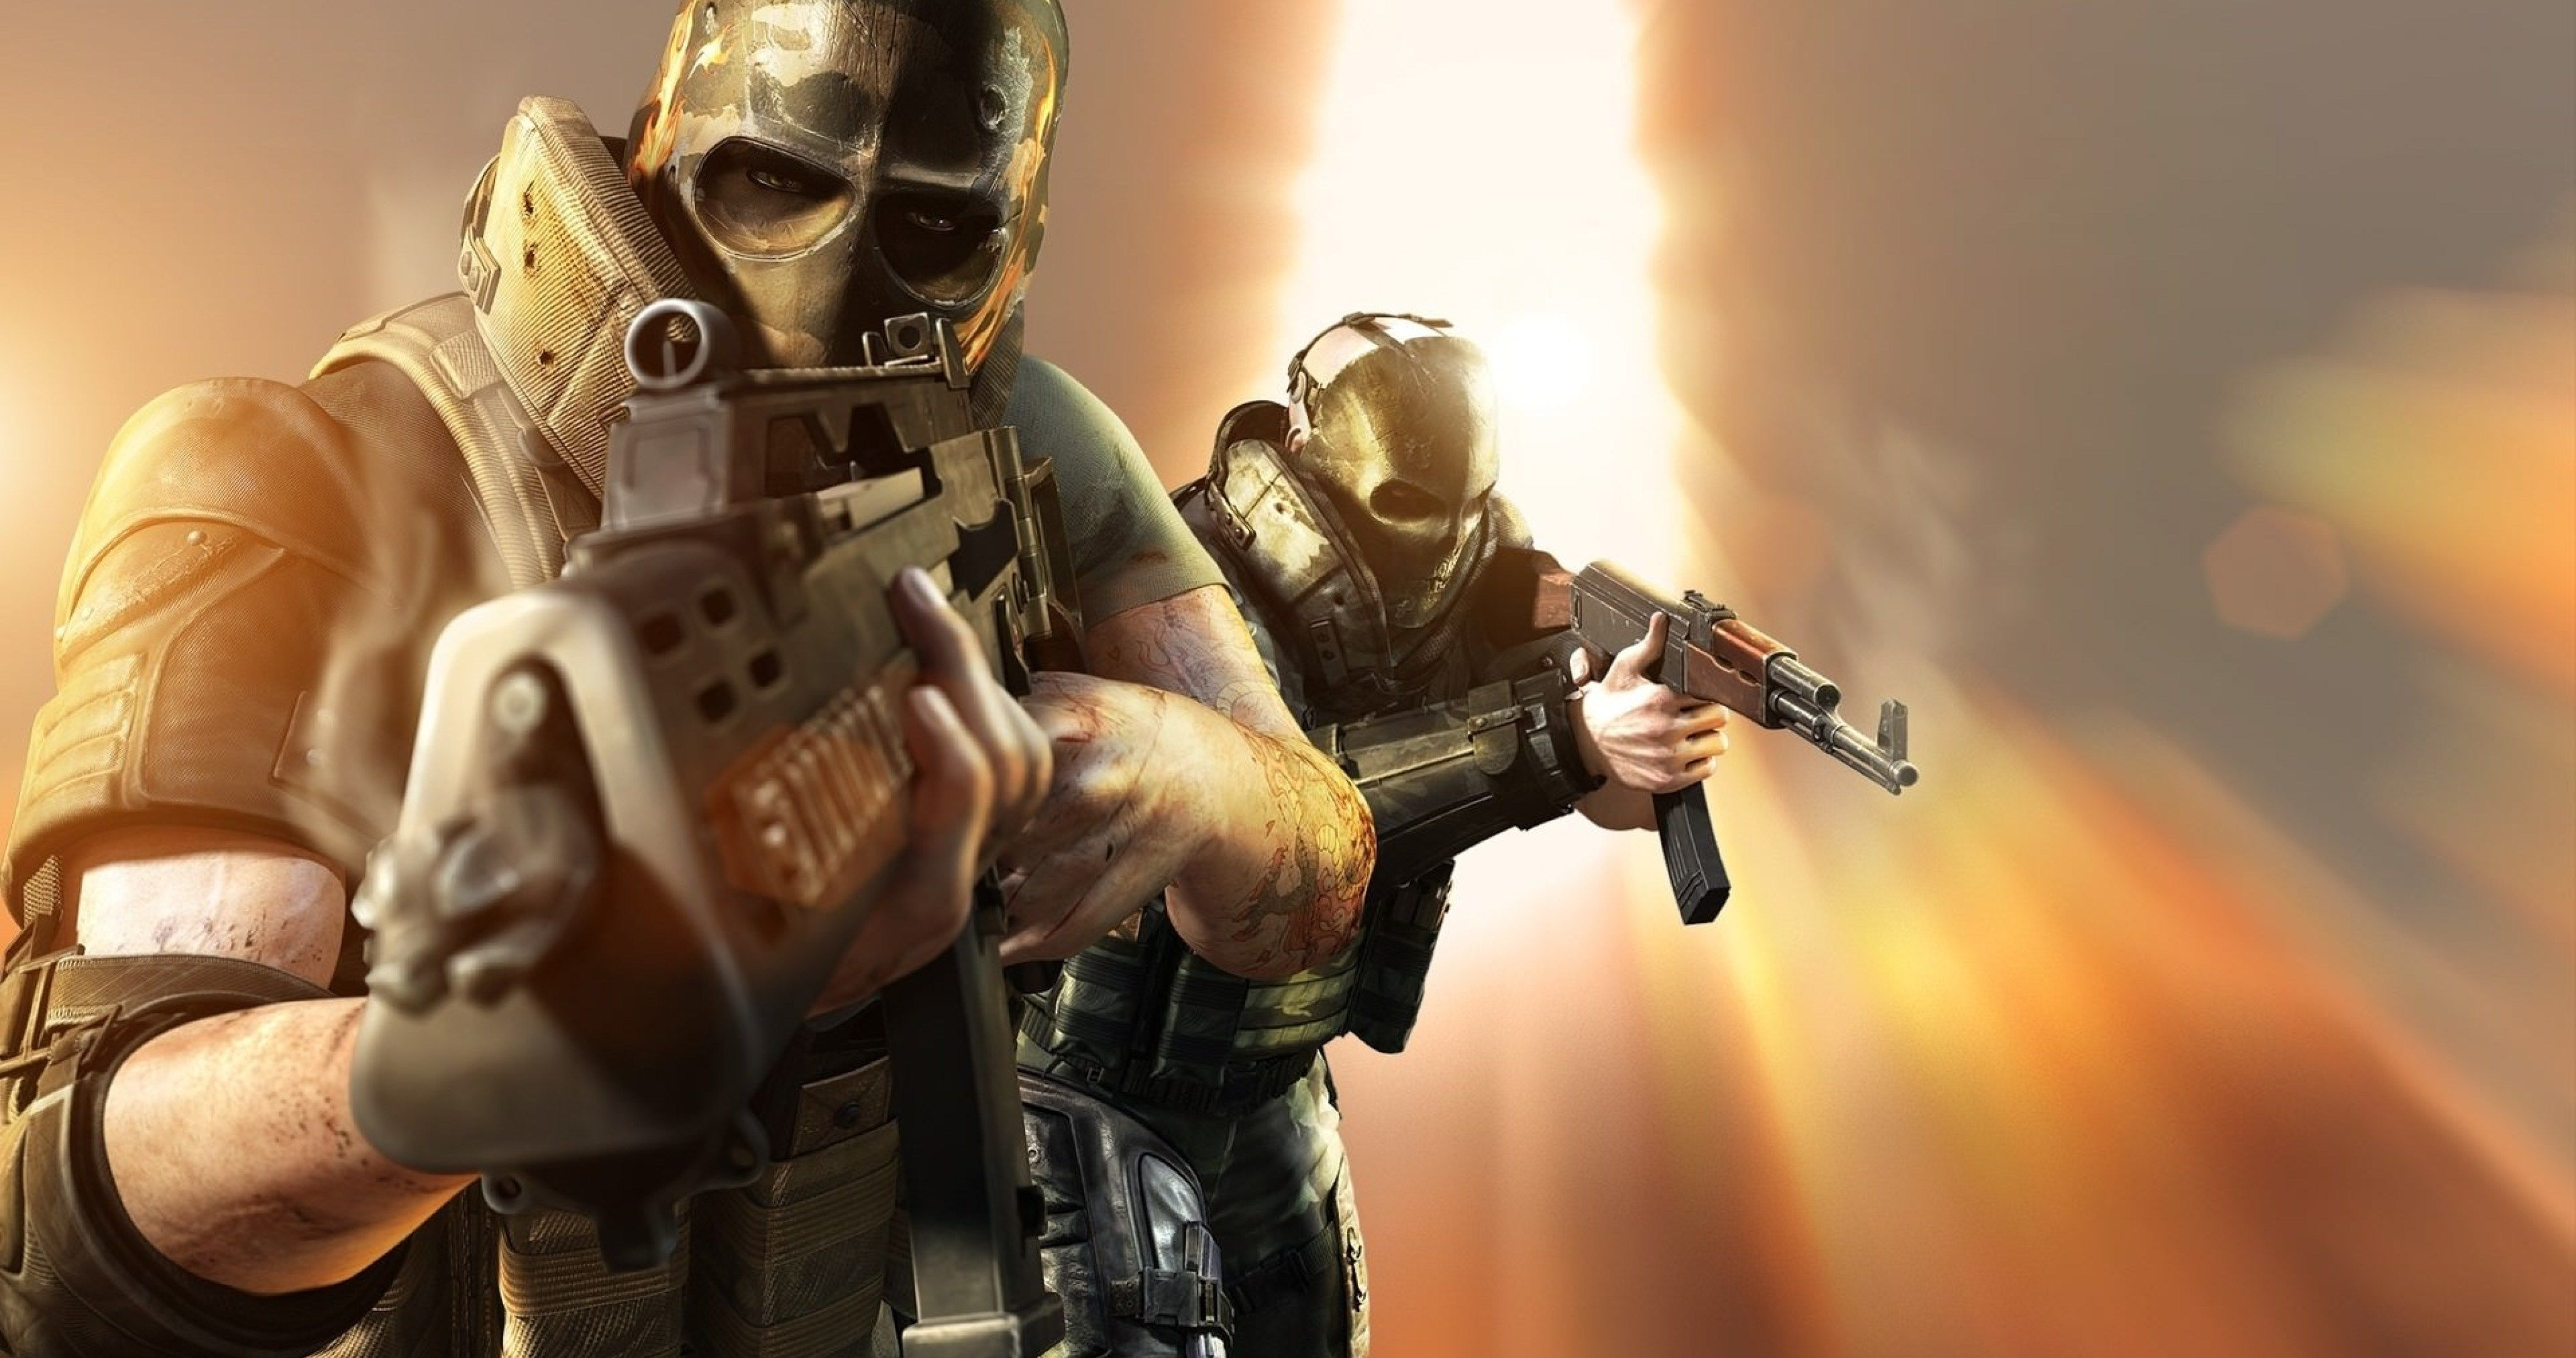 army of two game wallpaper 4k ultra hd wallpaper Army of